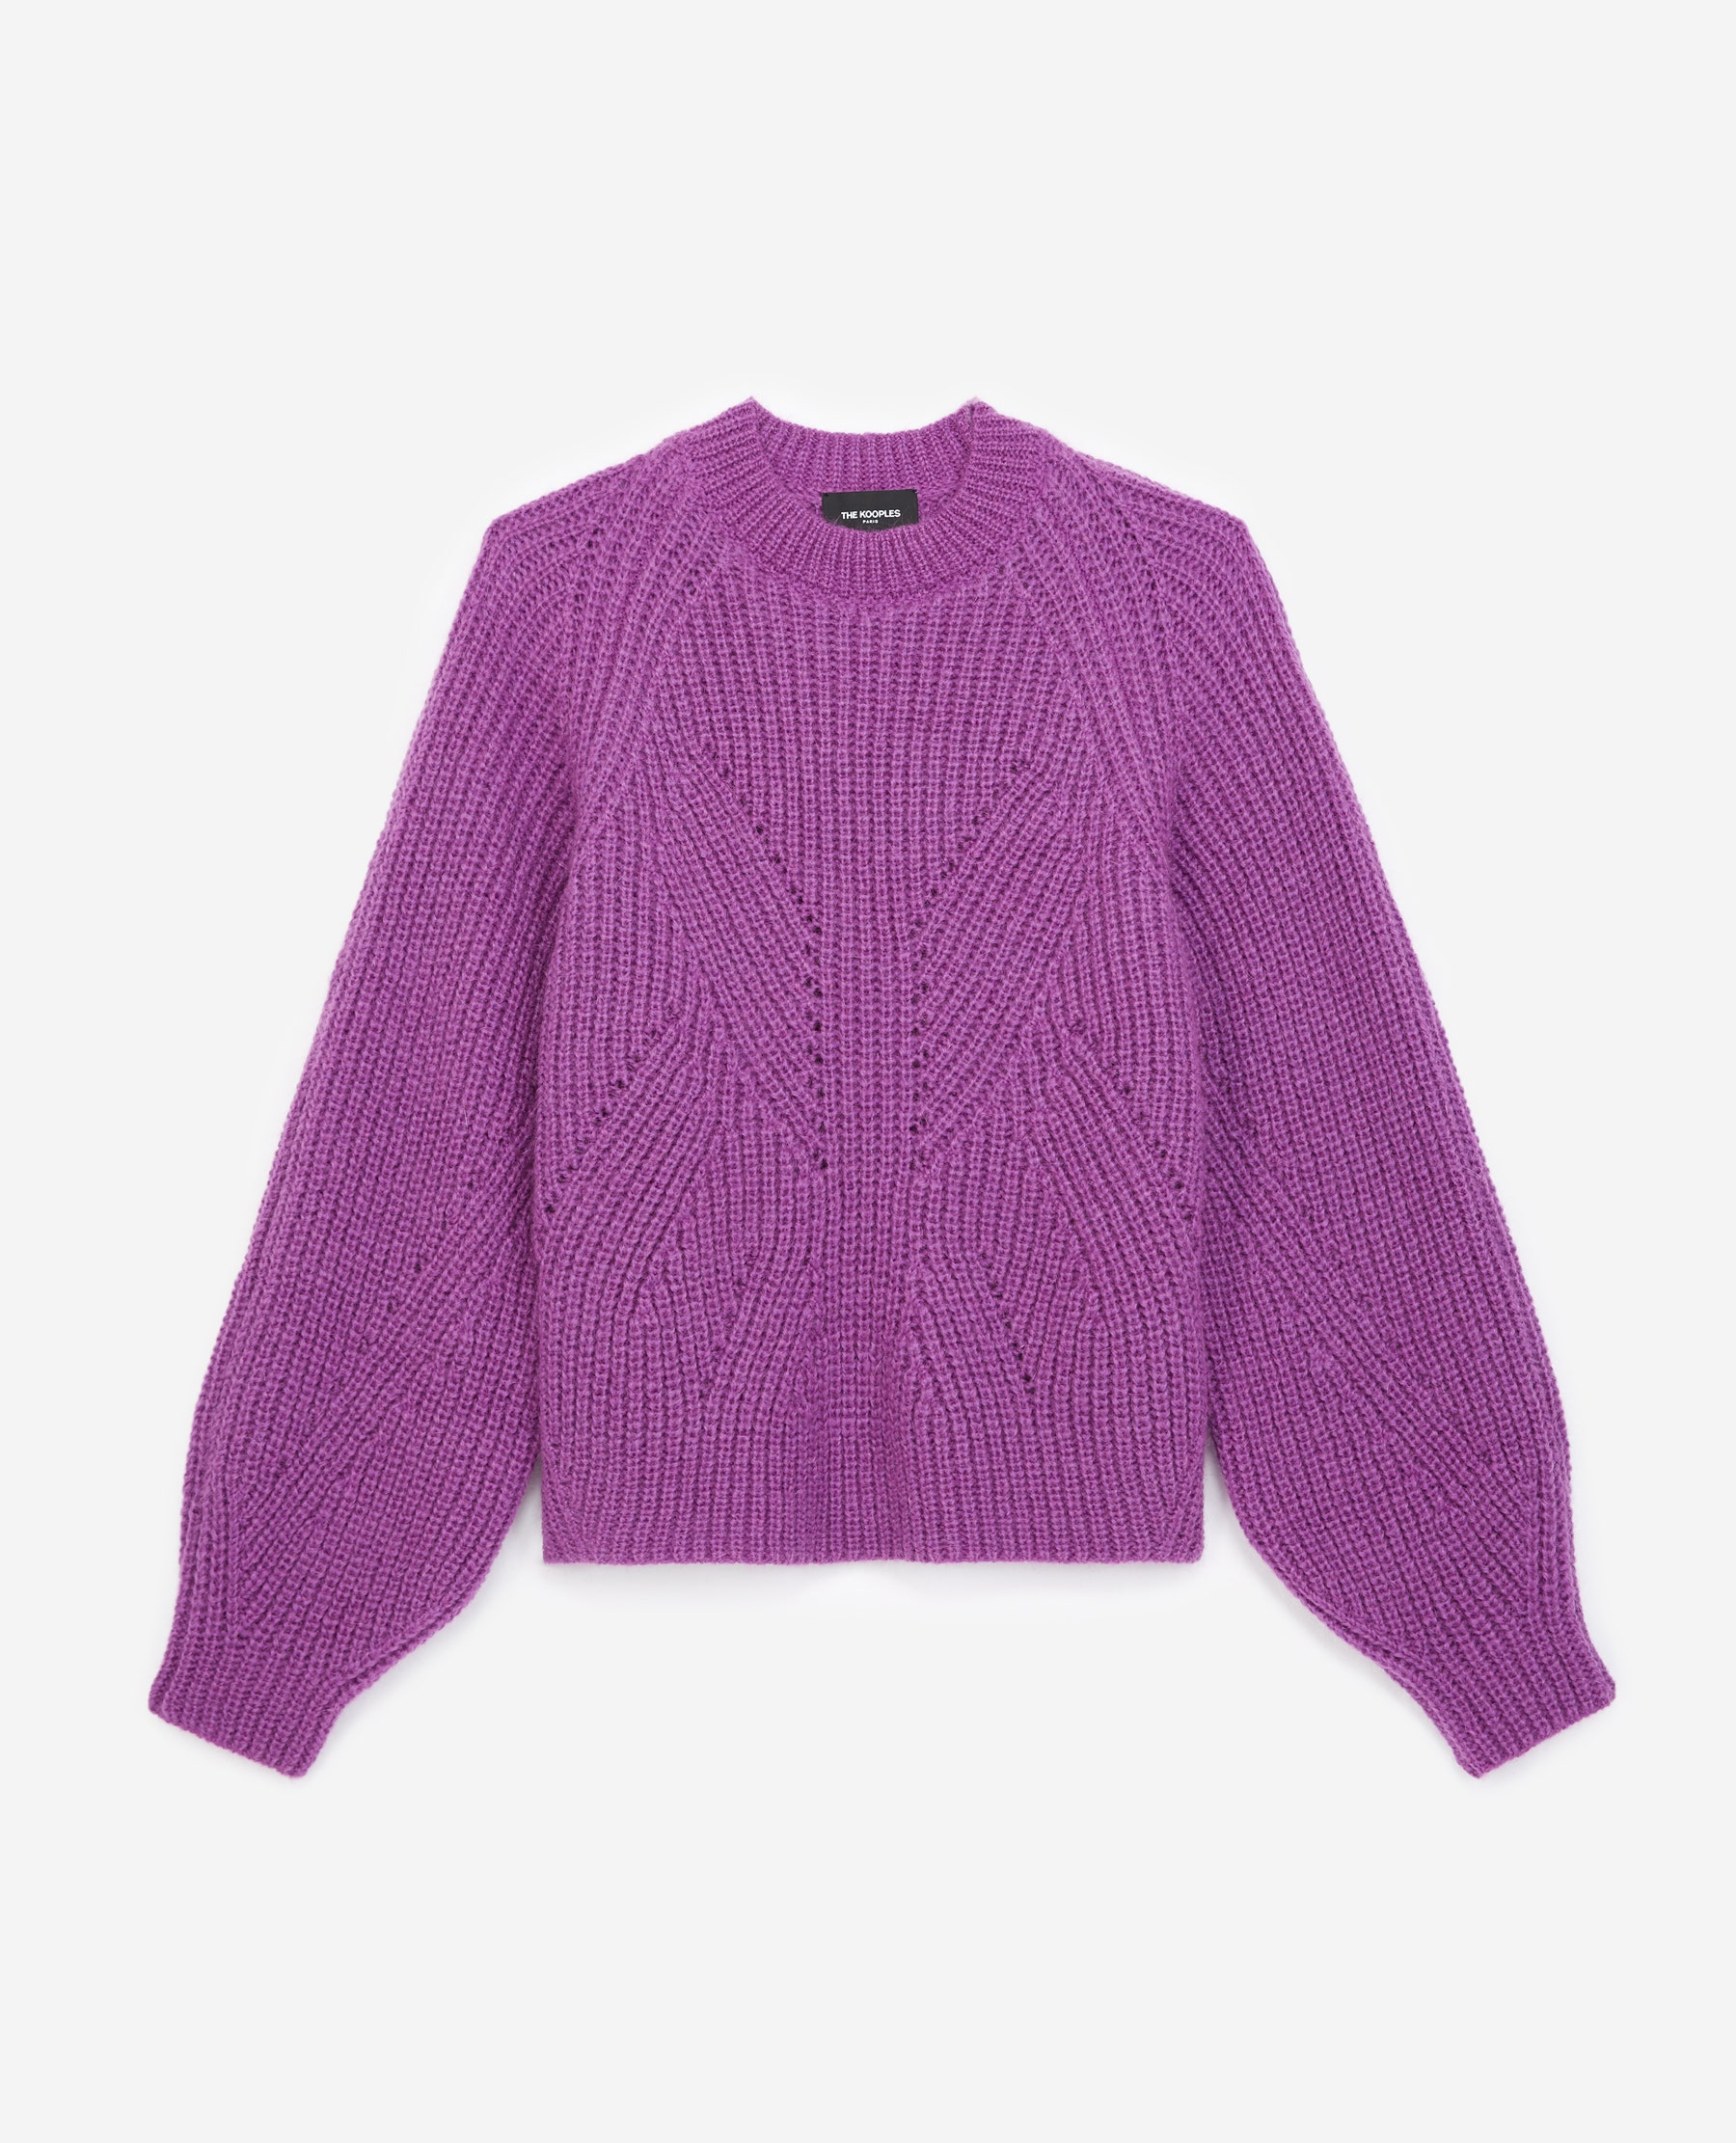 Pull maille violet à manches bouffantes - The Kooples - Modalova